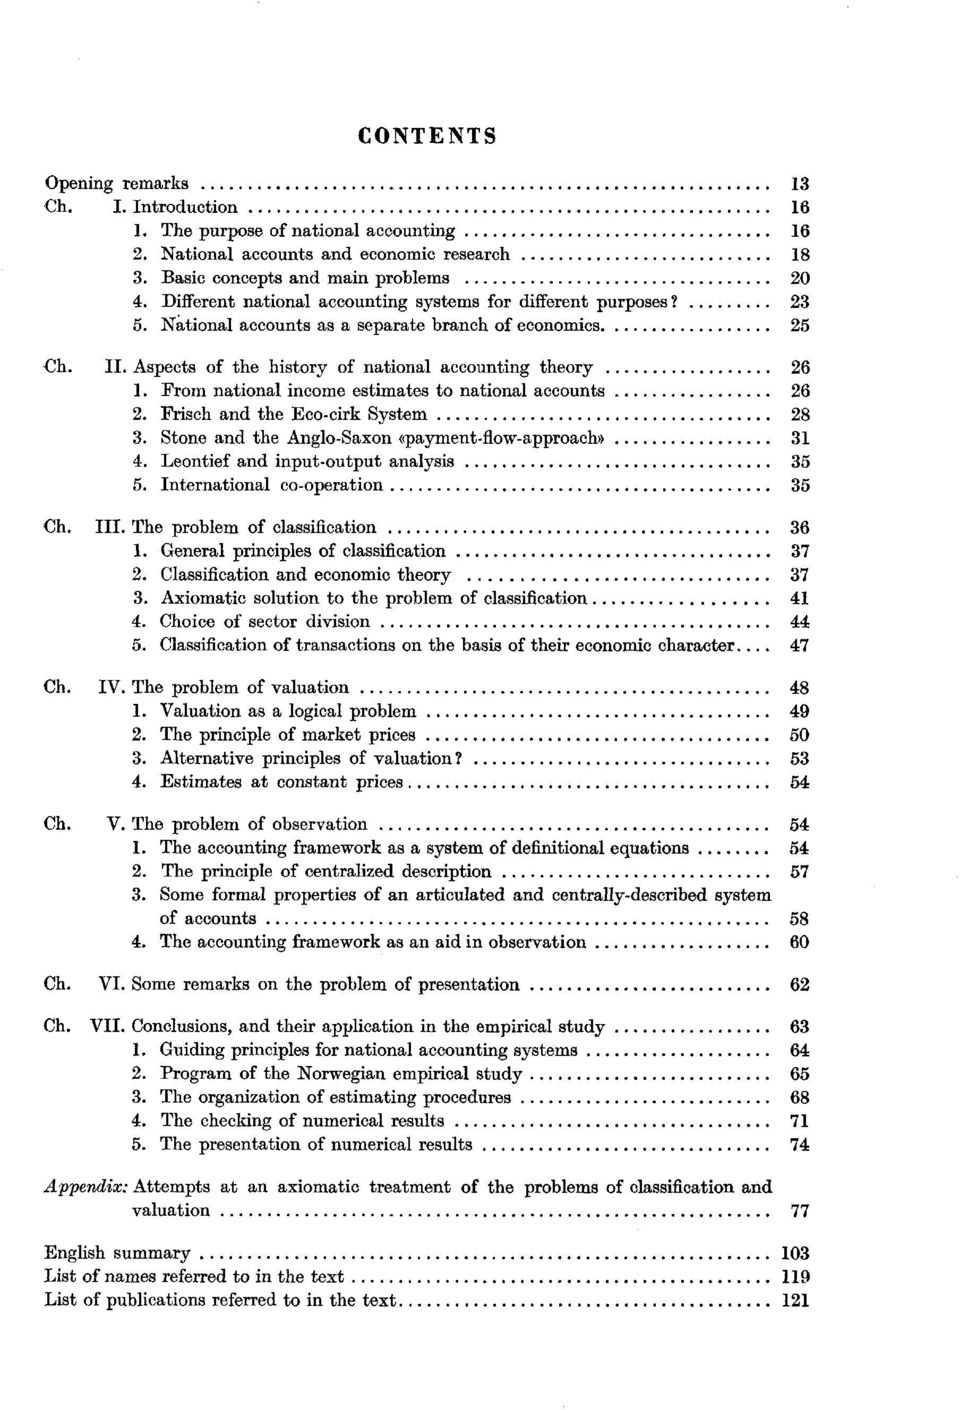 From national income estimates to national accounts 26 2. Frisch and the Eco-cirk System 28 3. Stone and the Anglo-Saxon «payment-flow-approach» 31 4. Leontief and input-output analysis 35 5.